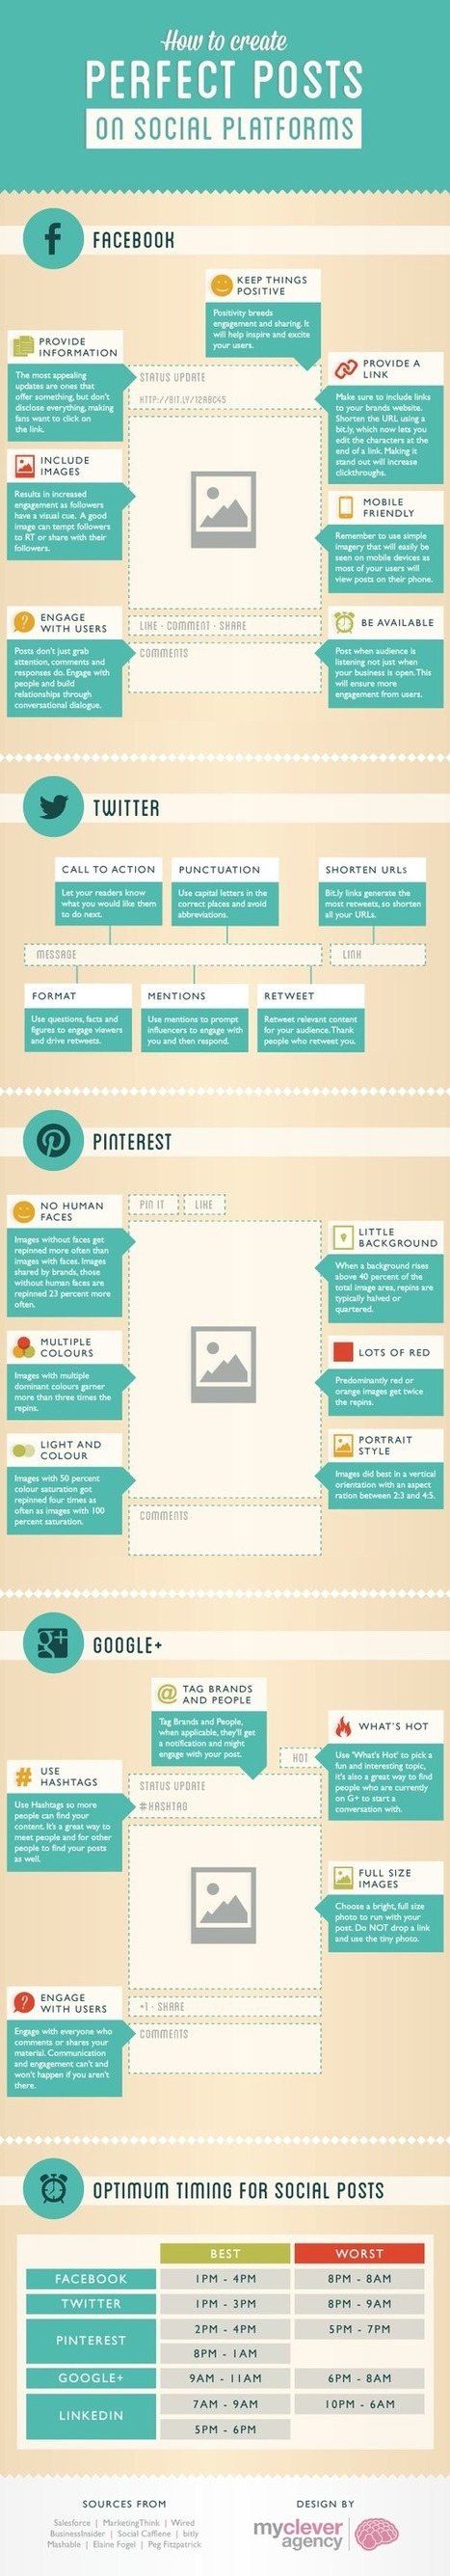 How to Create the Perfect Post on Social Media [INFOGRAPHIC] | Education & Social Media | Scoop.it